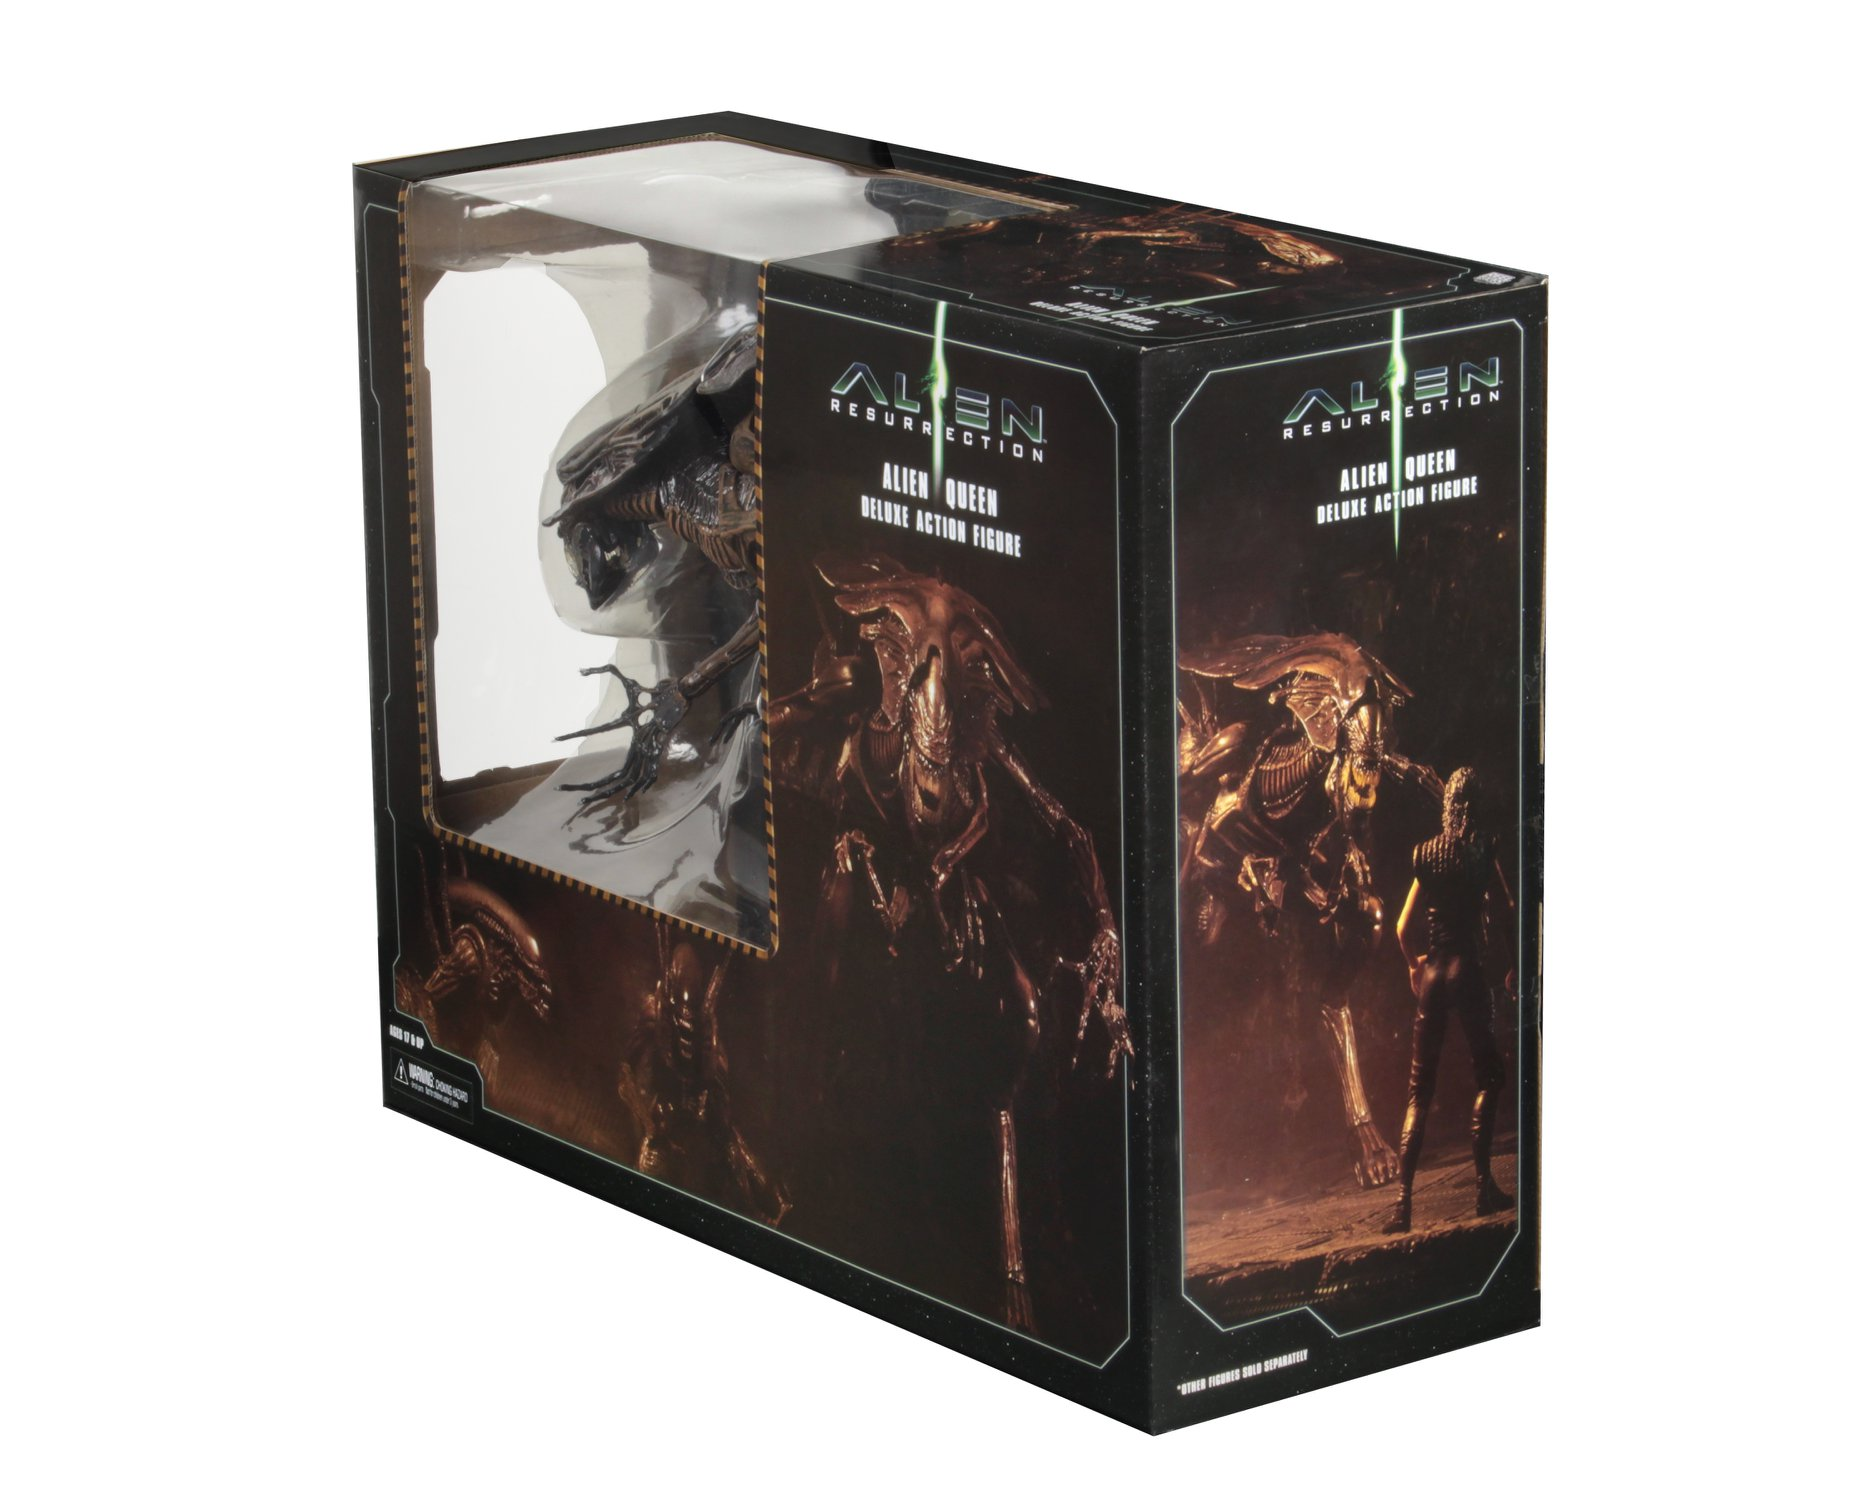 NECA Alien Resurrection Queen Packaging 002